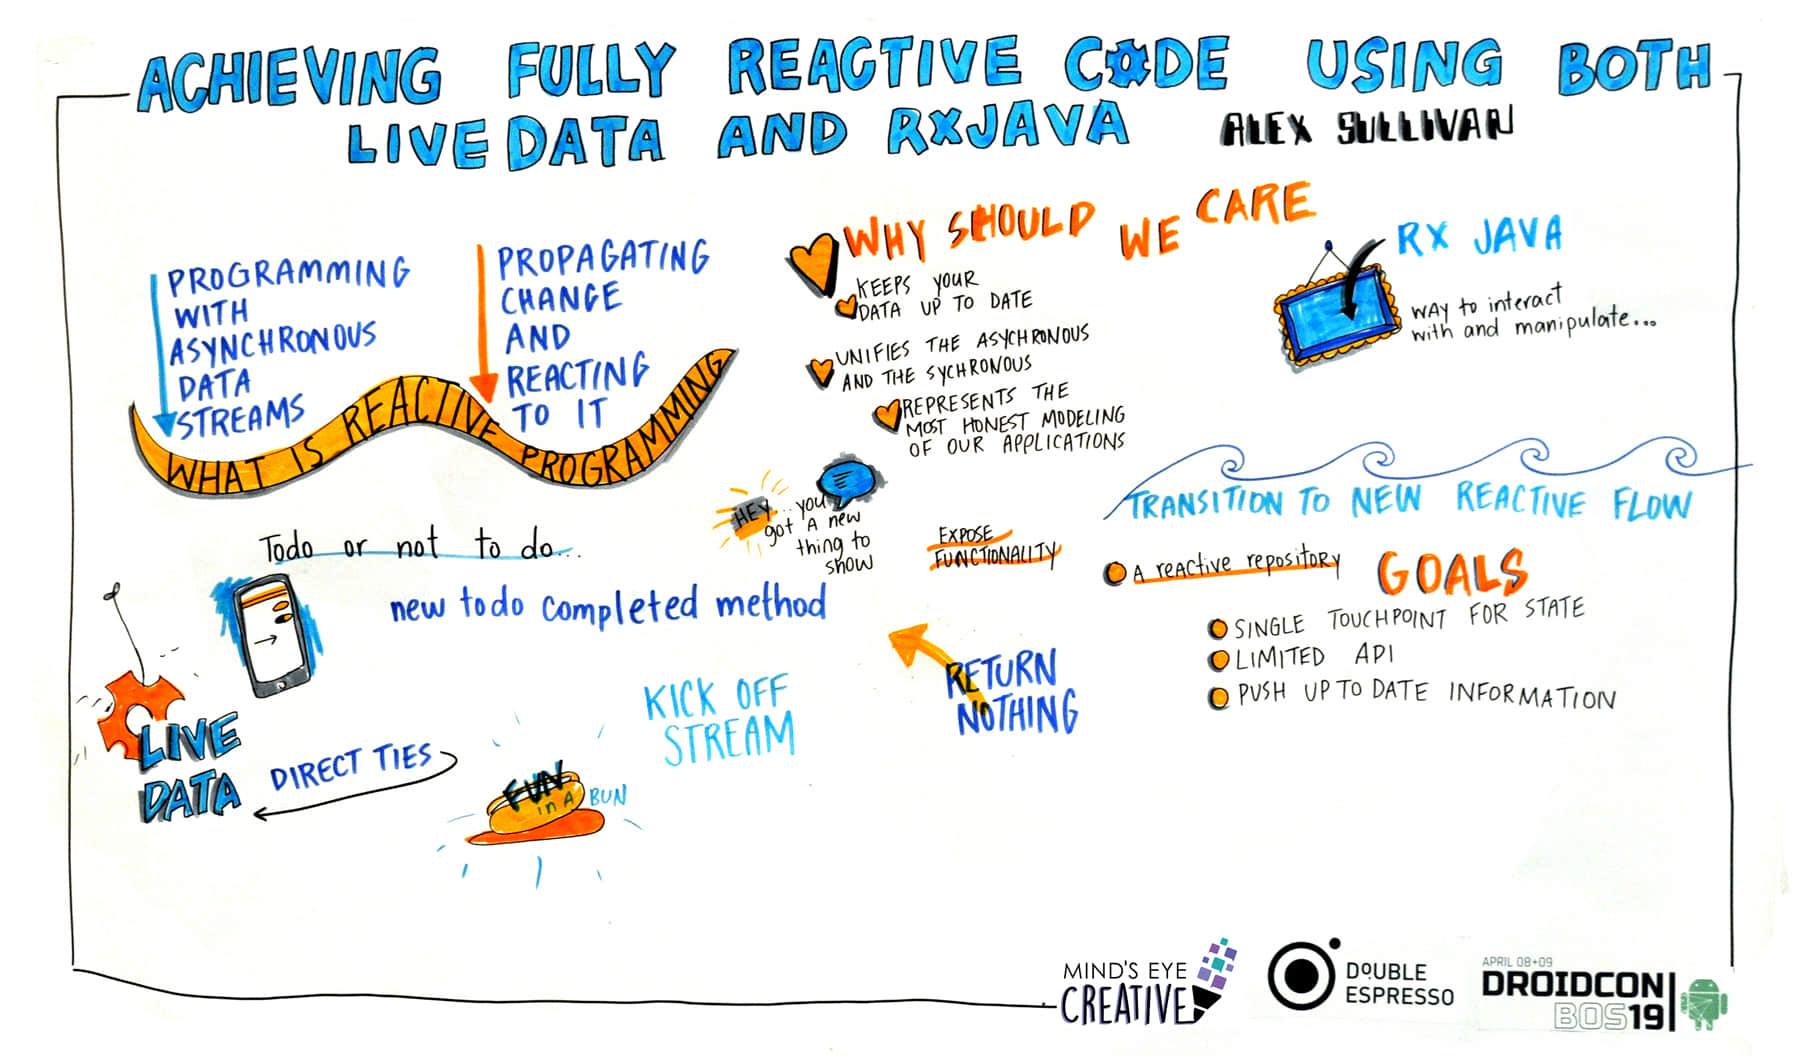 Mind's Eye Creative graphic recording at DroidCon 2019